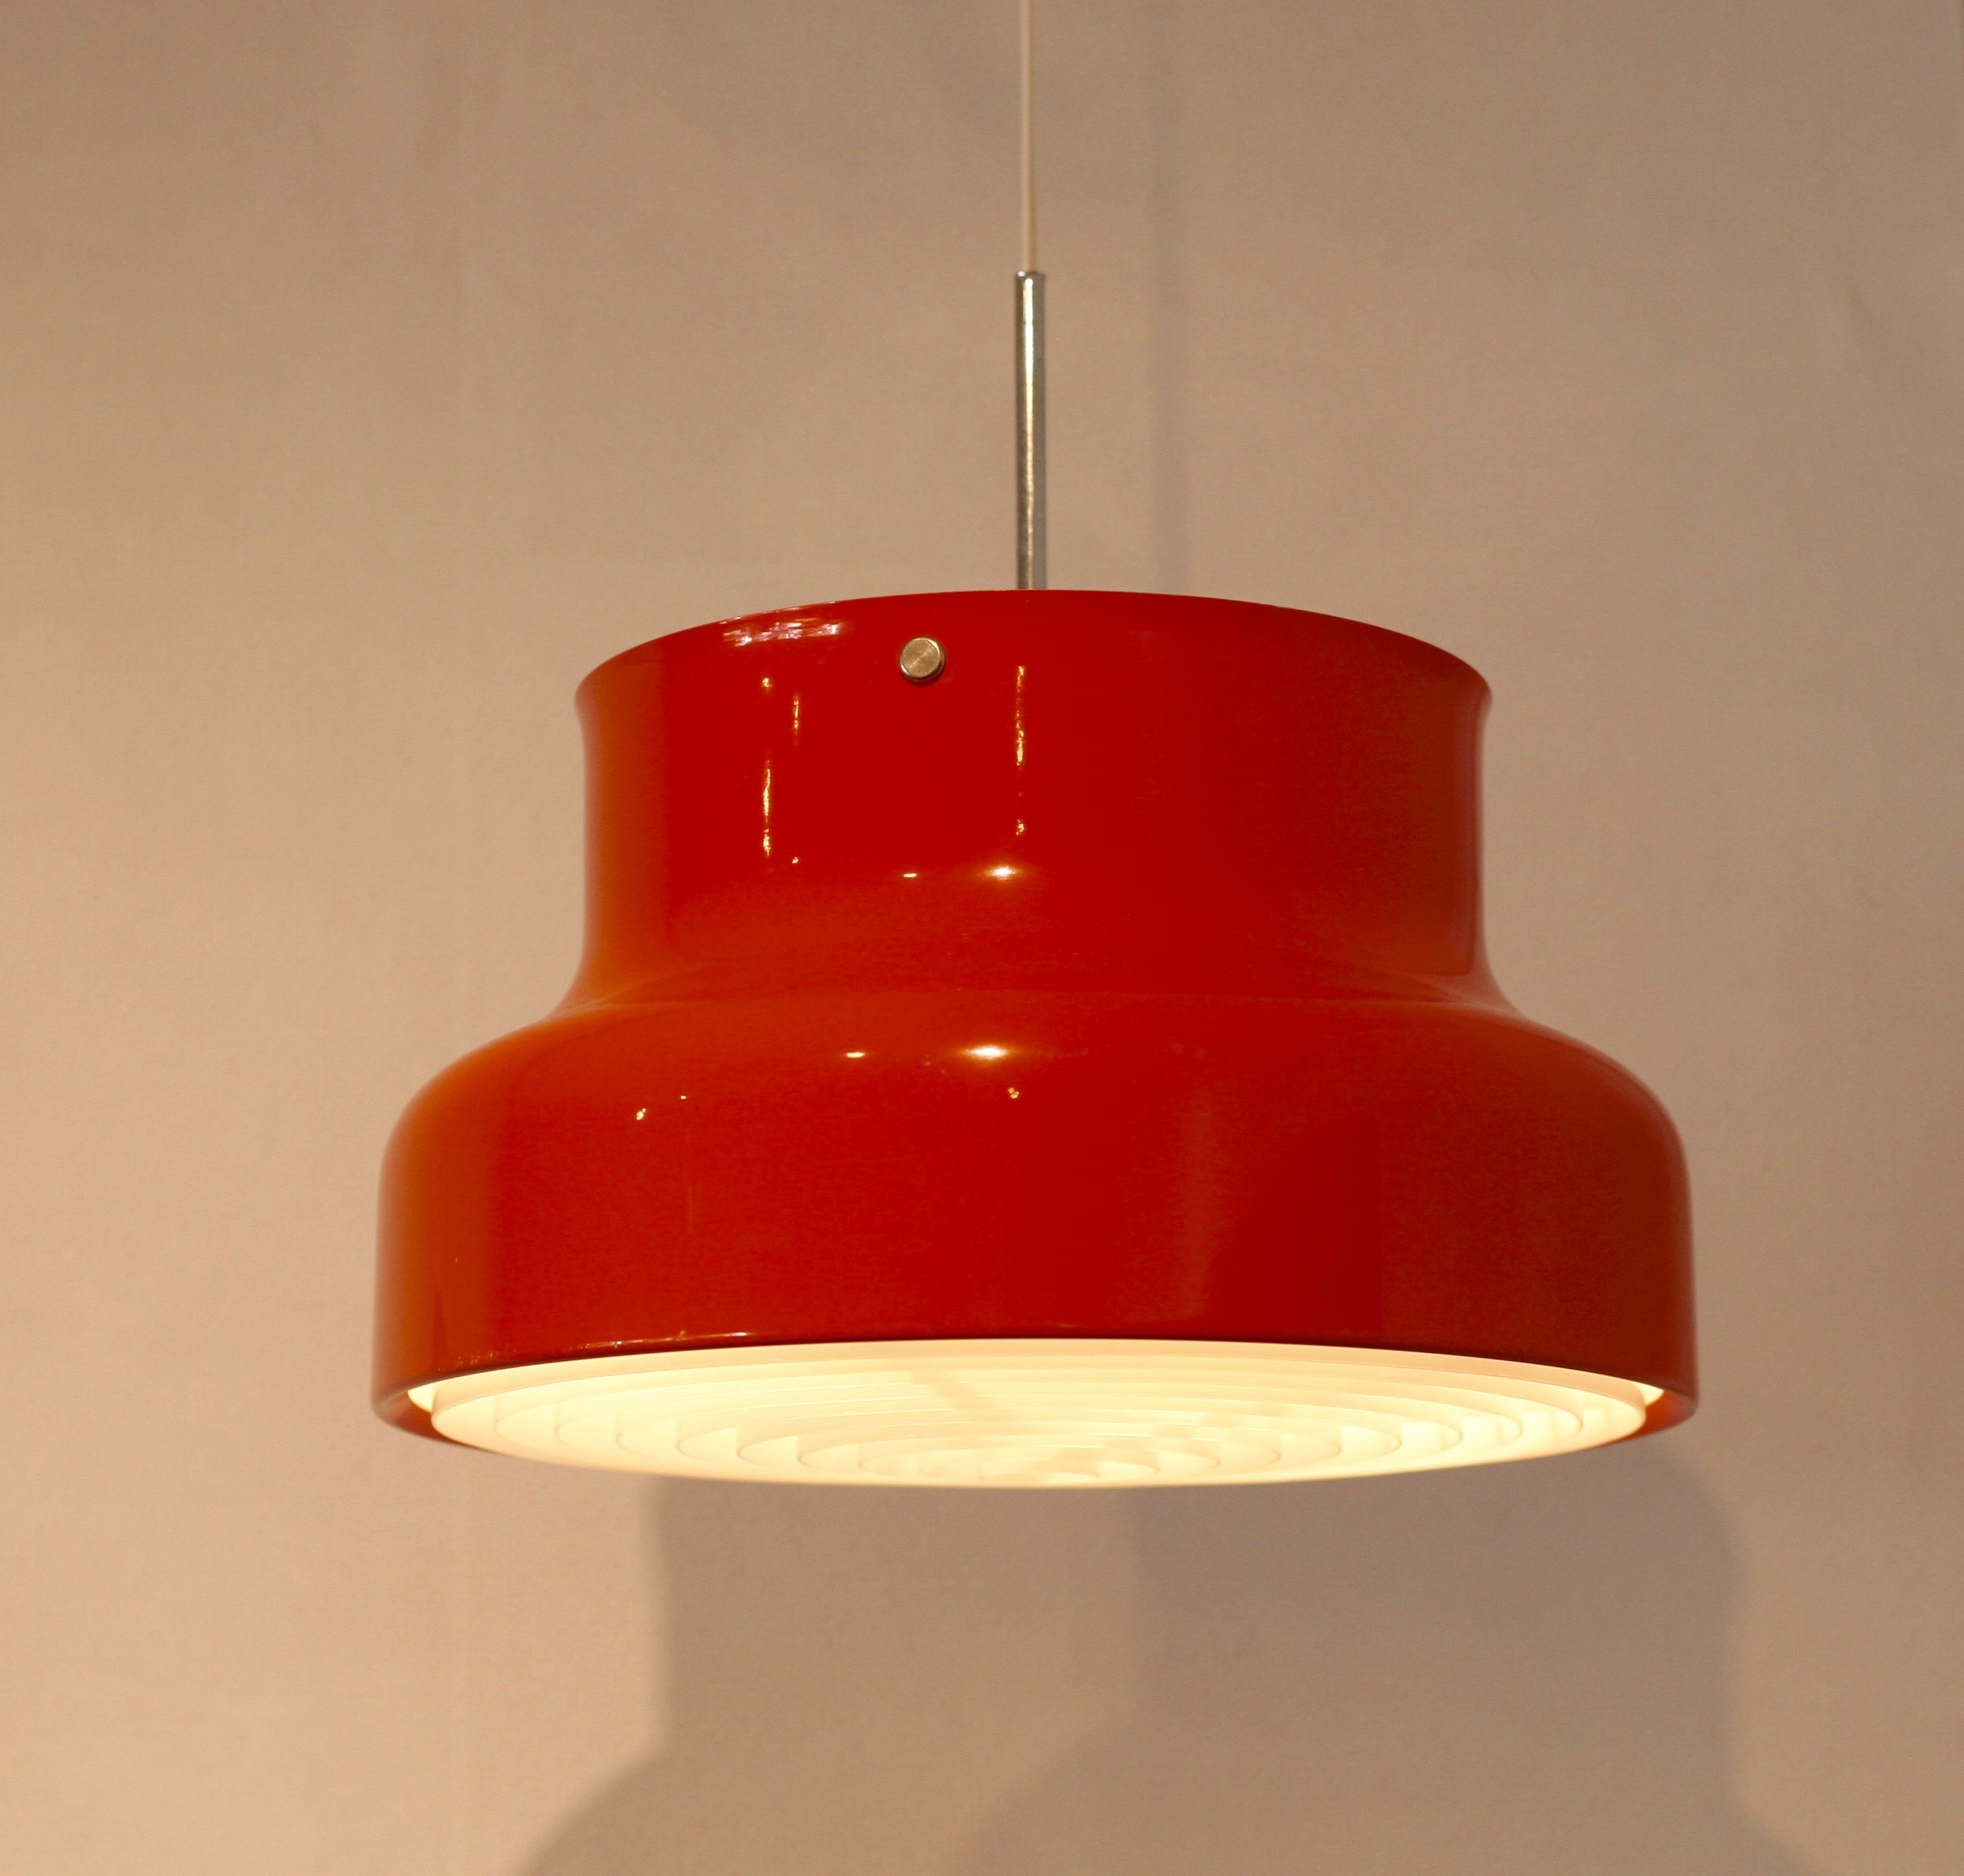 Bumling ceiling lamp by Anders Persson